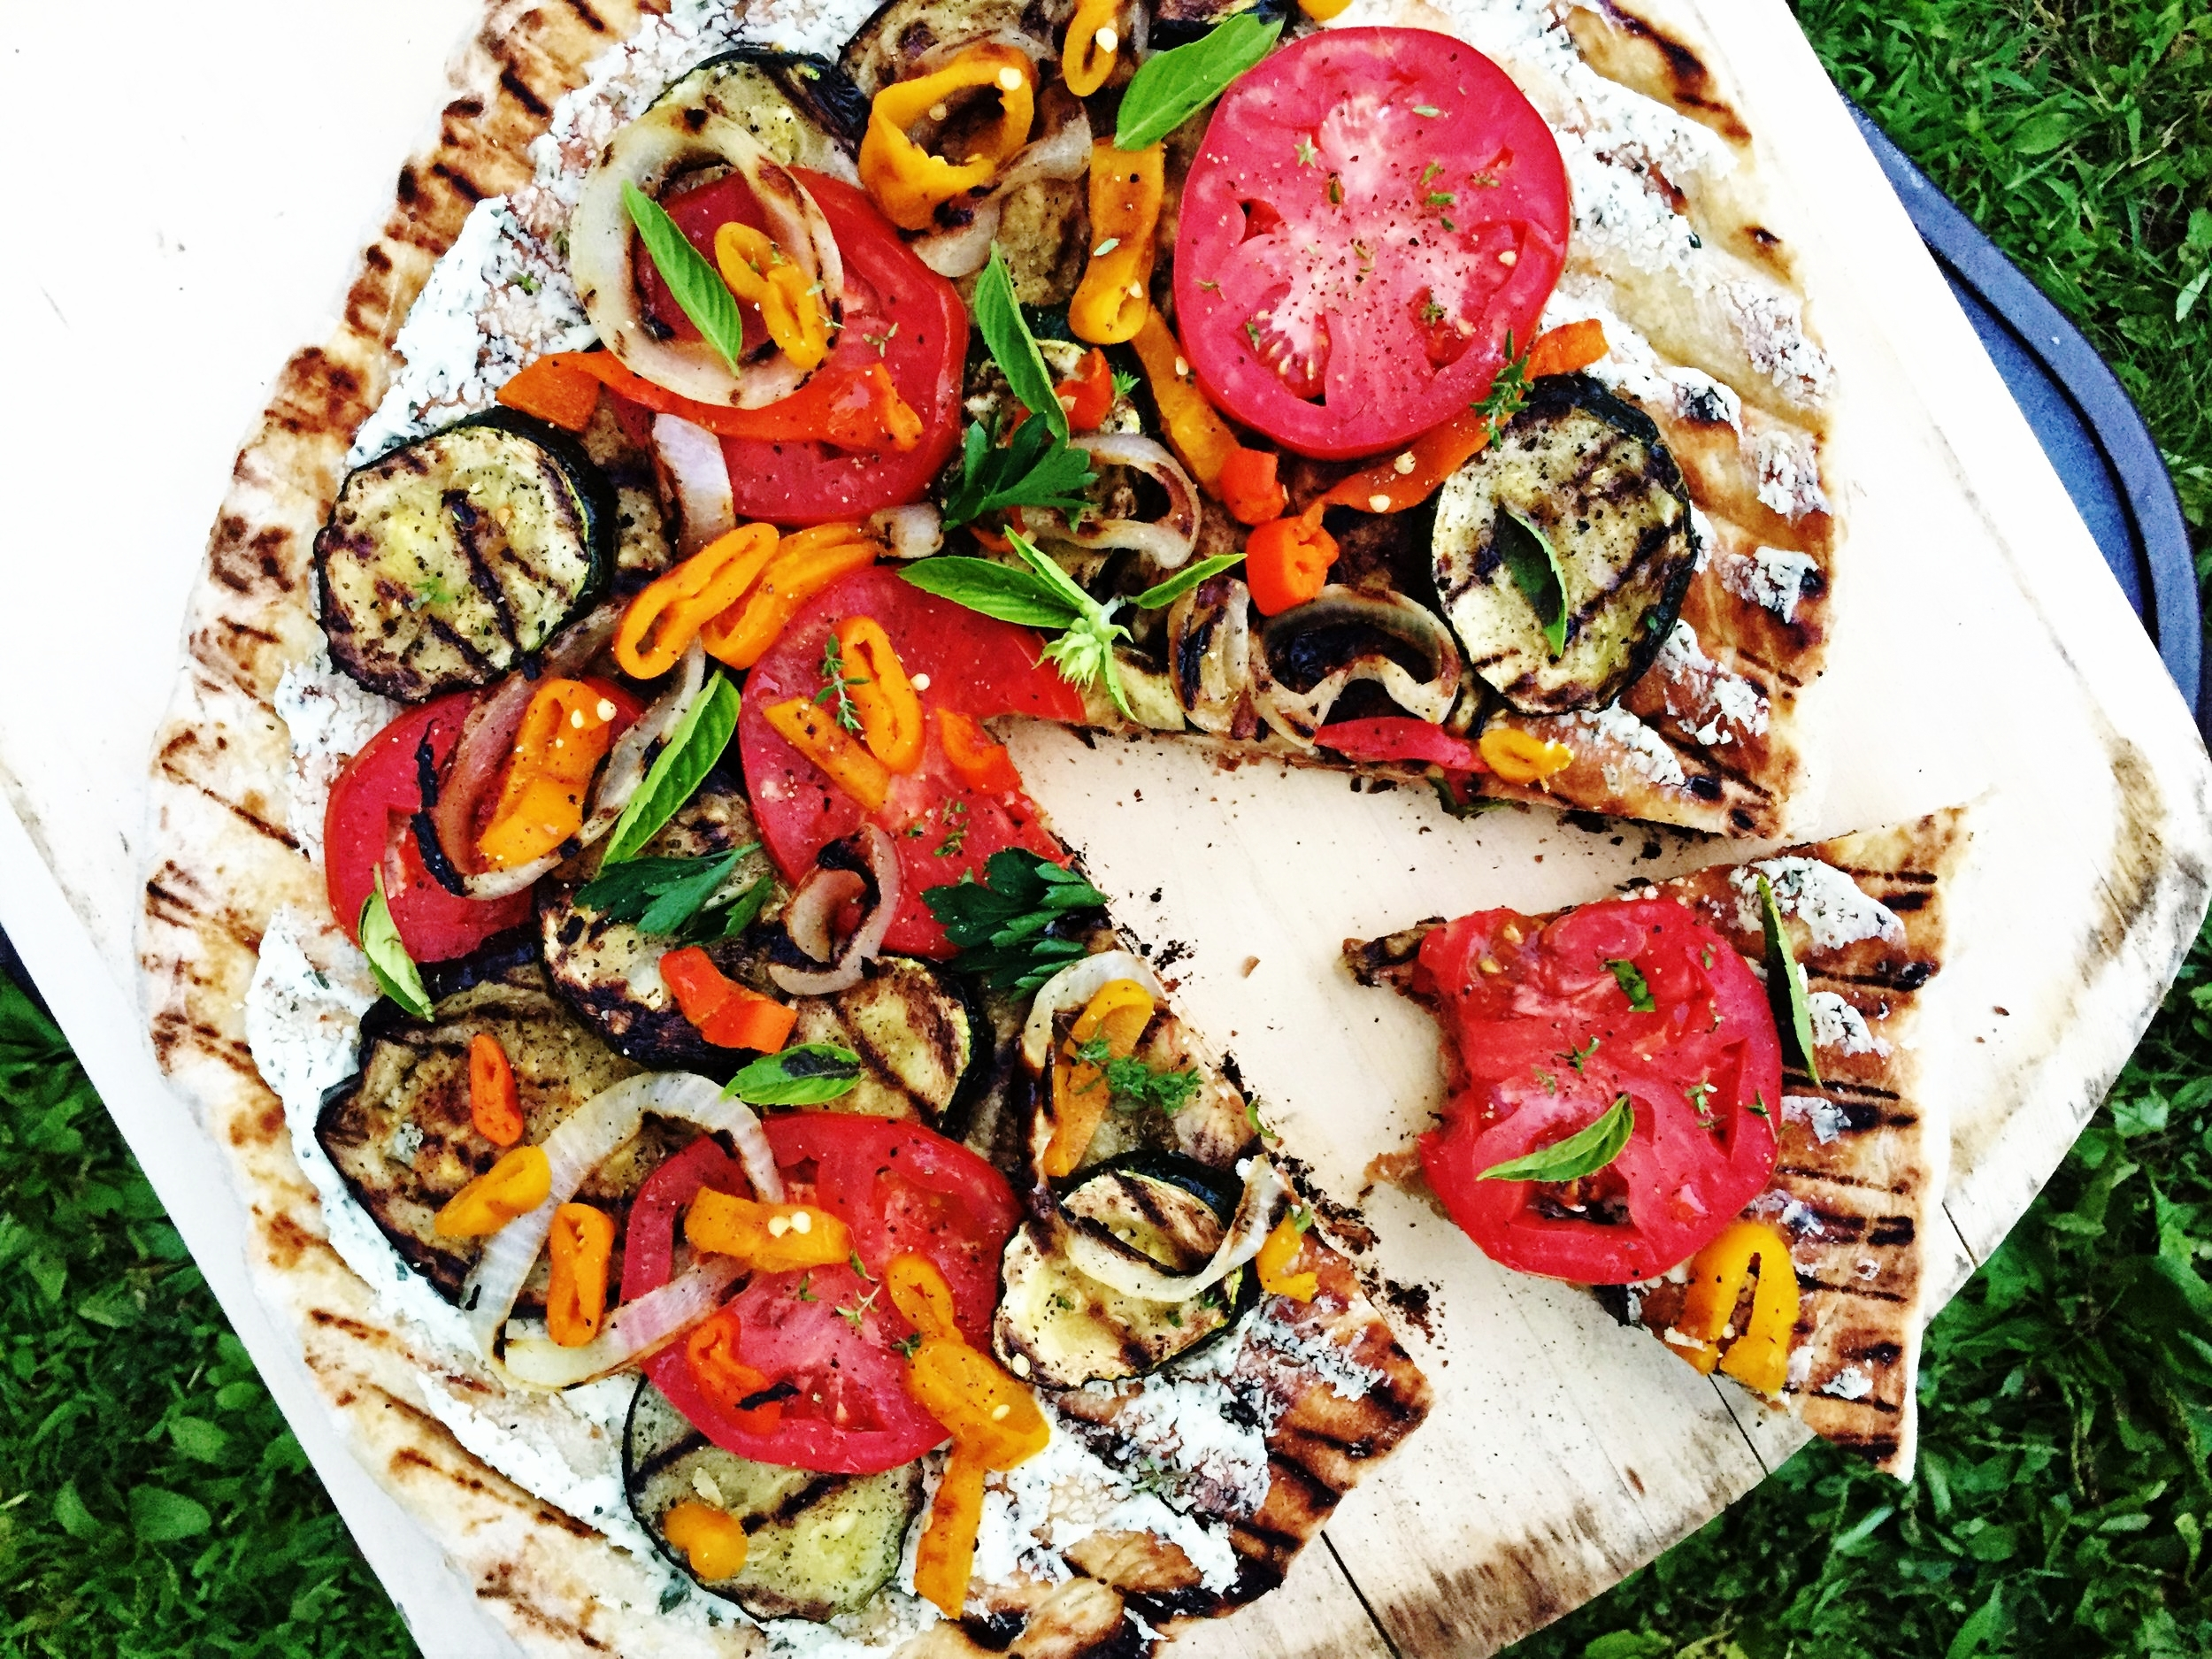 Grilled Ratatouille Pizza made in the Adventure Kitchen.